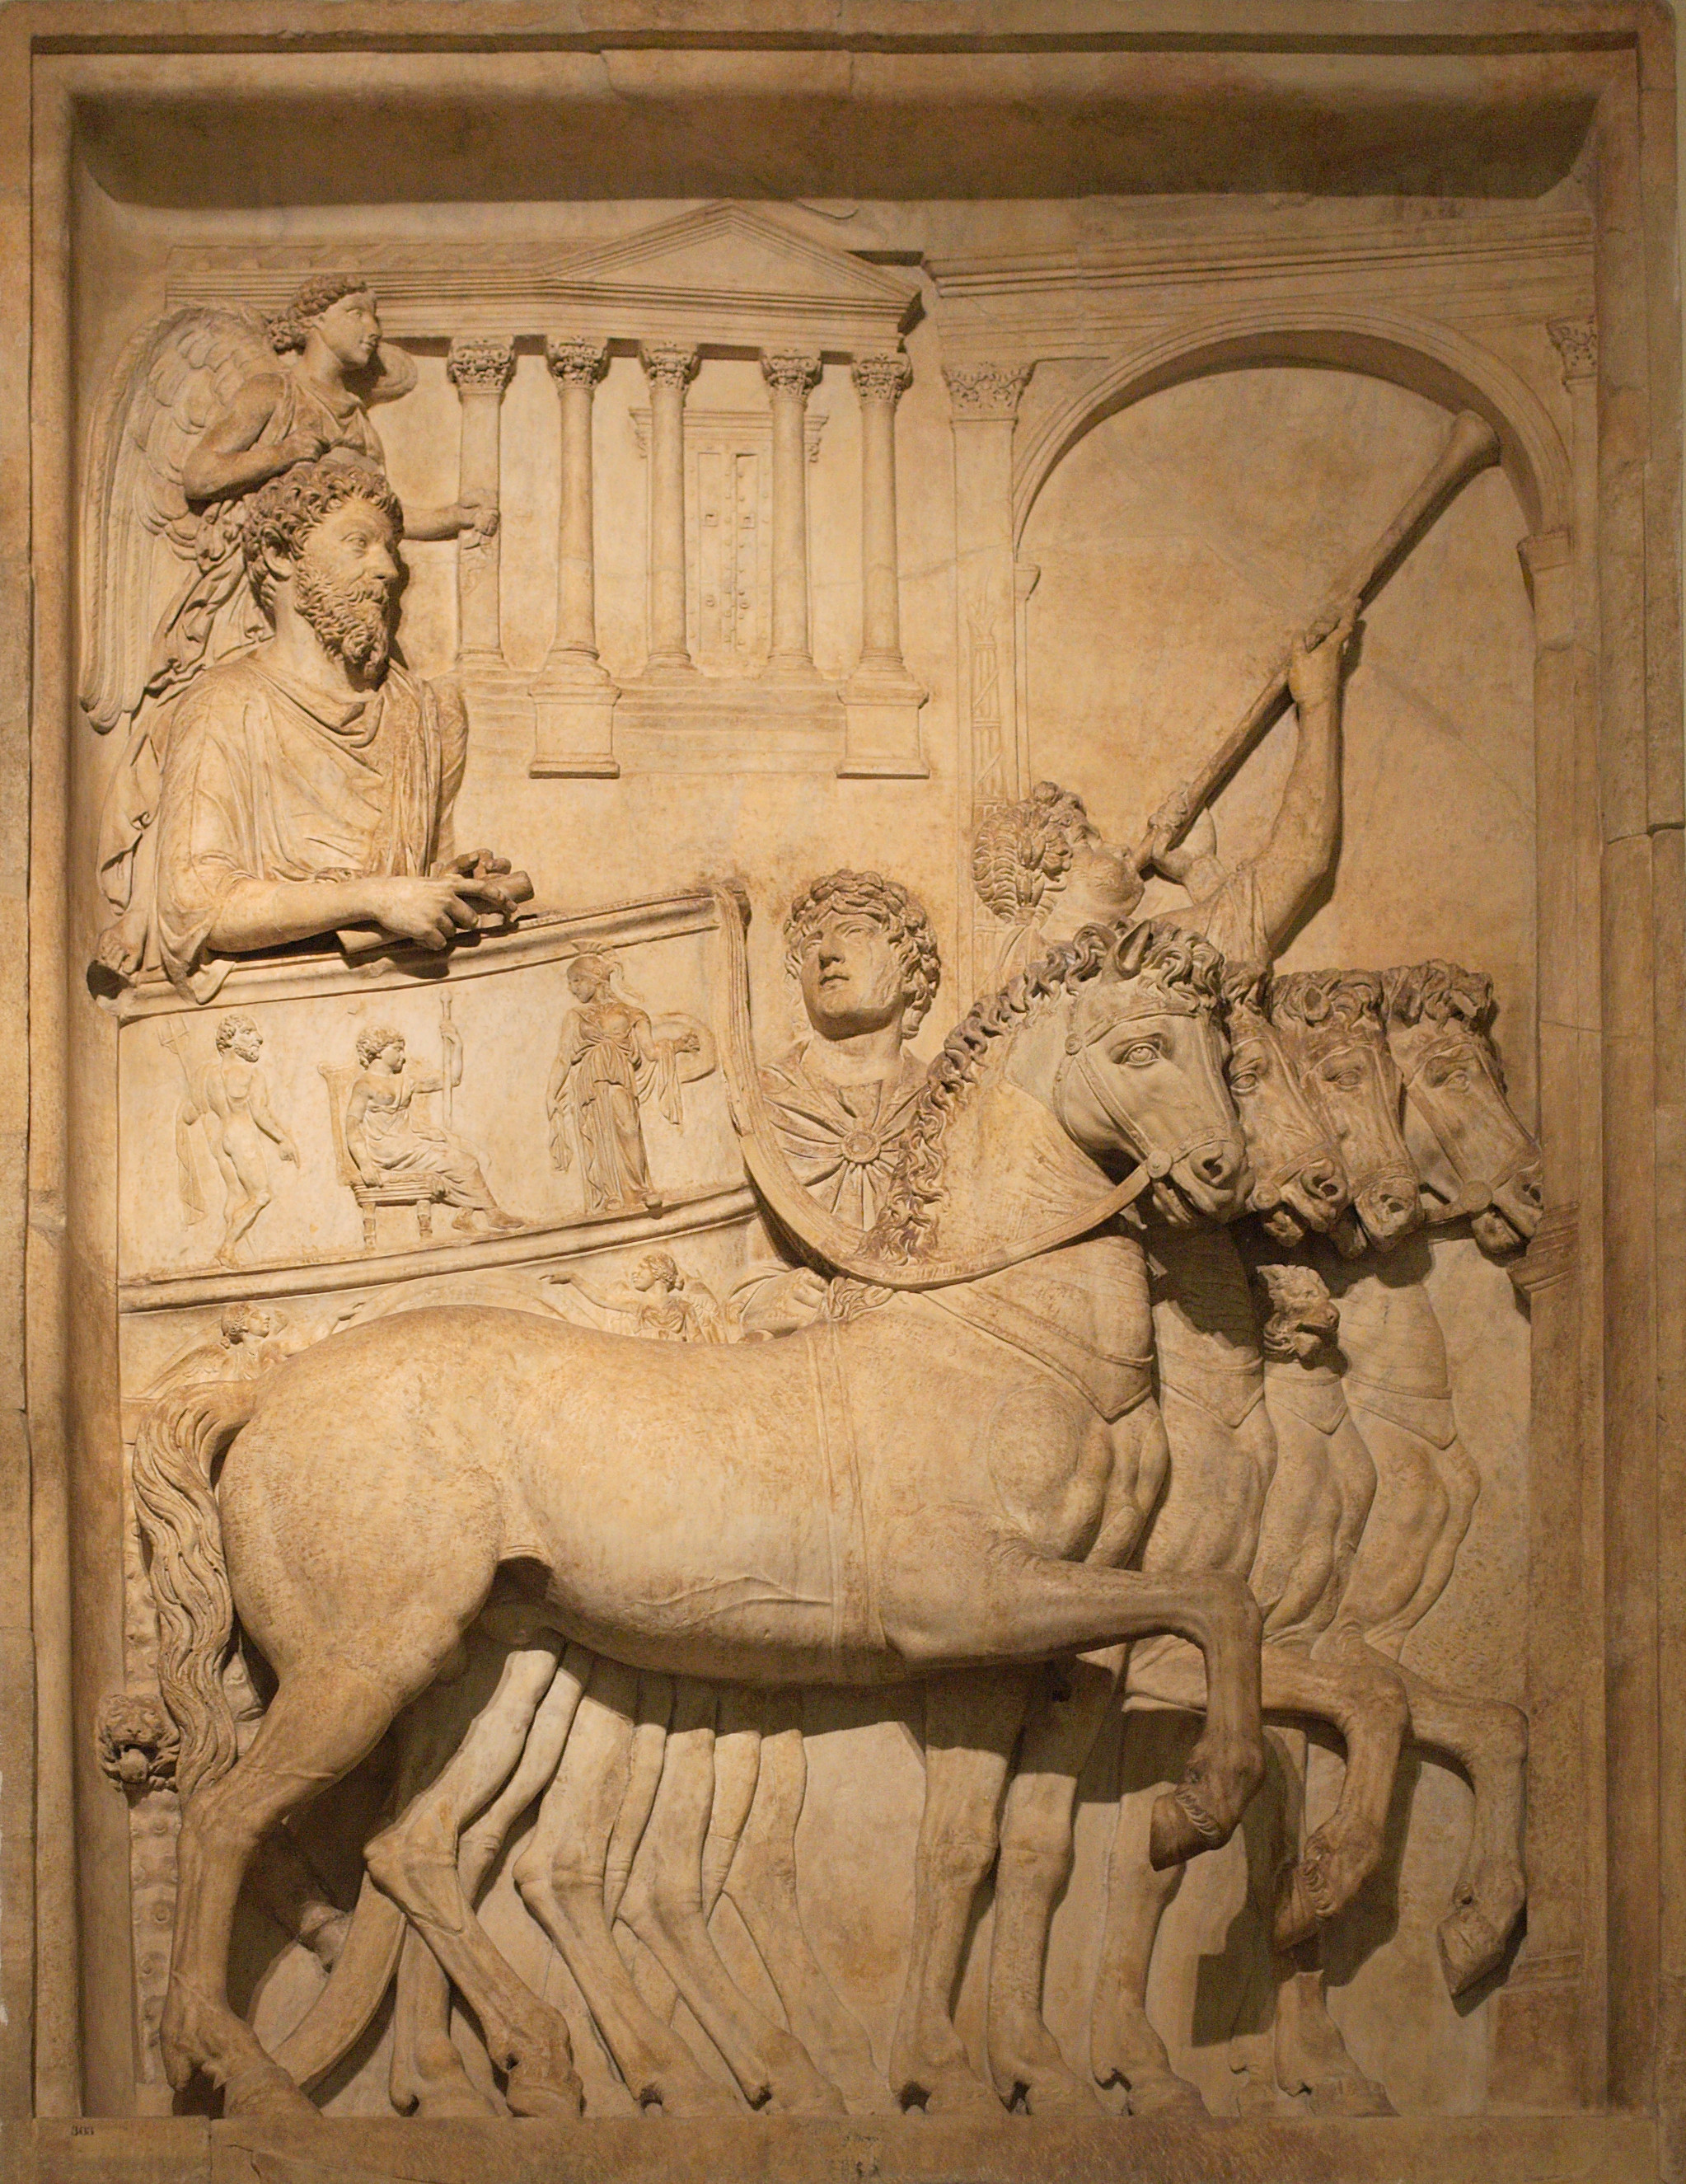 https://upload.wikimedia.org/wikipedia/commons/b/b5/Bas_relief_from_Arch_of_Marcus_Aurelius_triumph_chariot.jpg